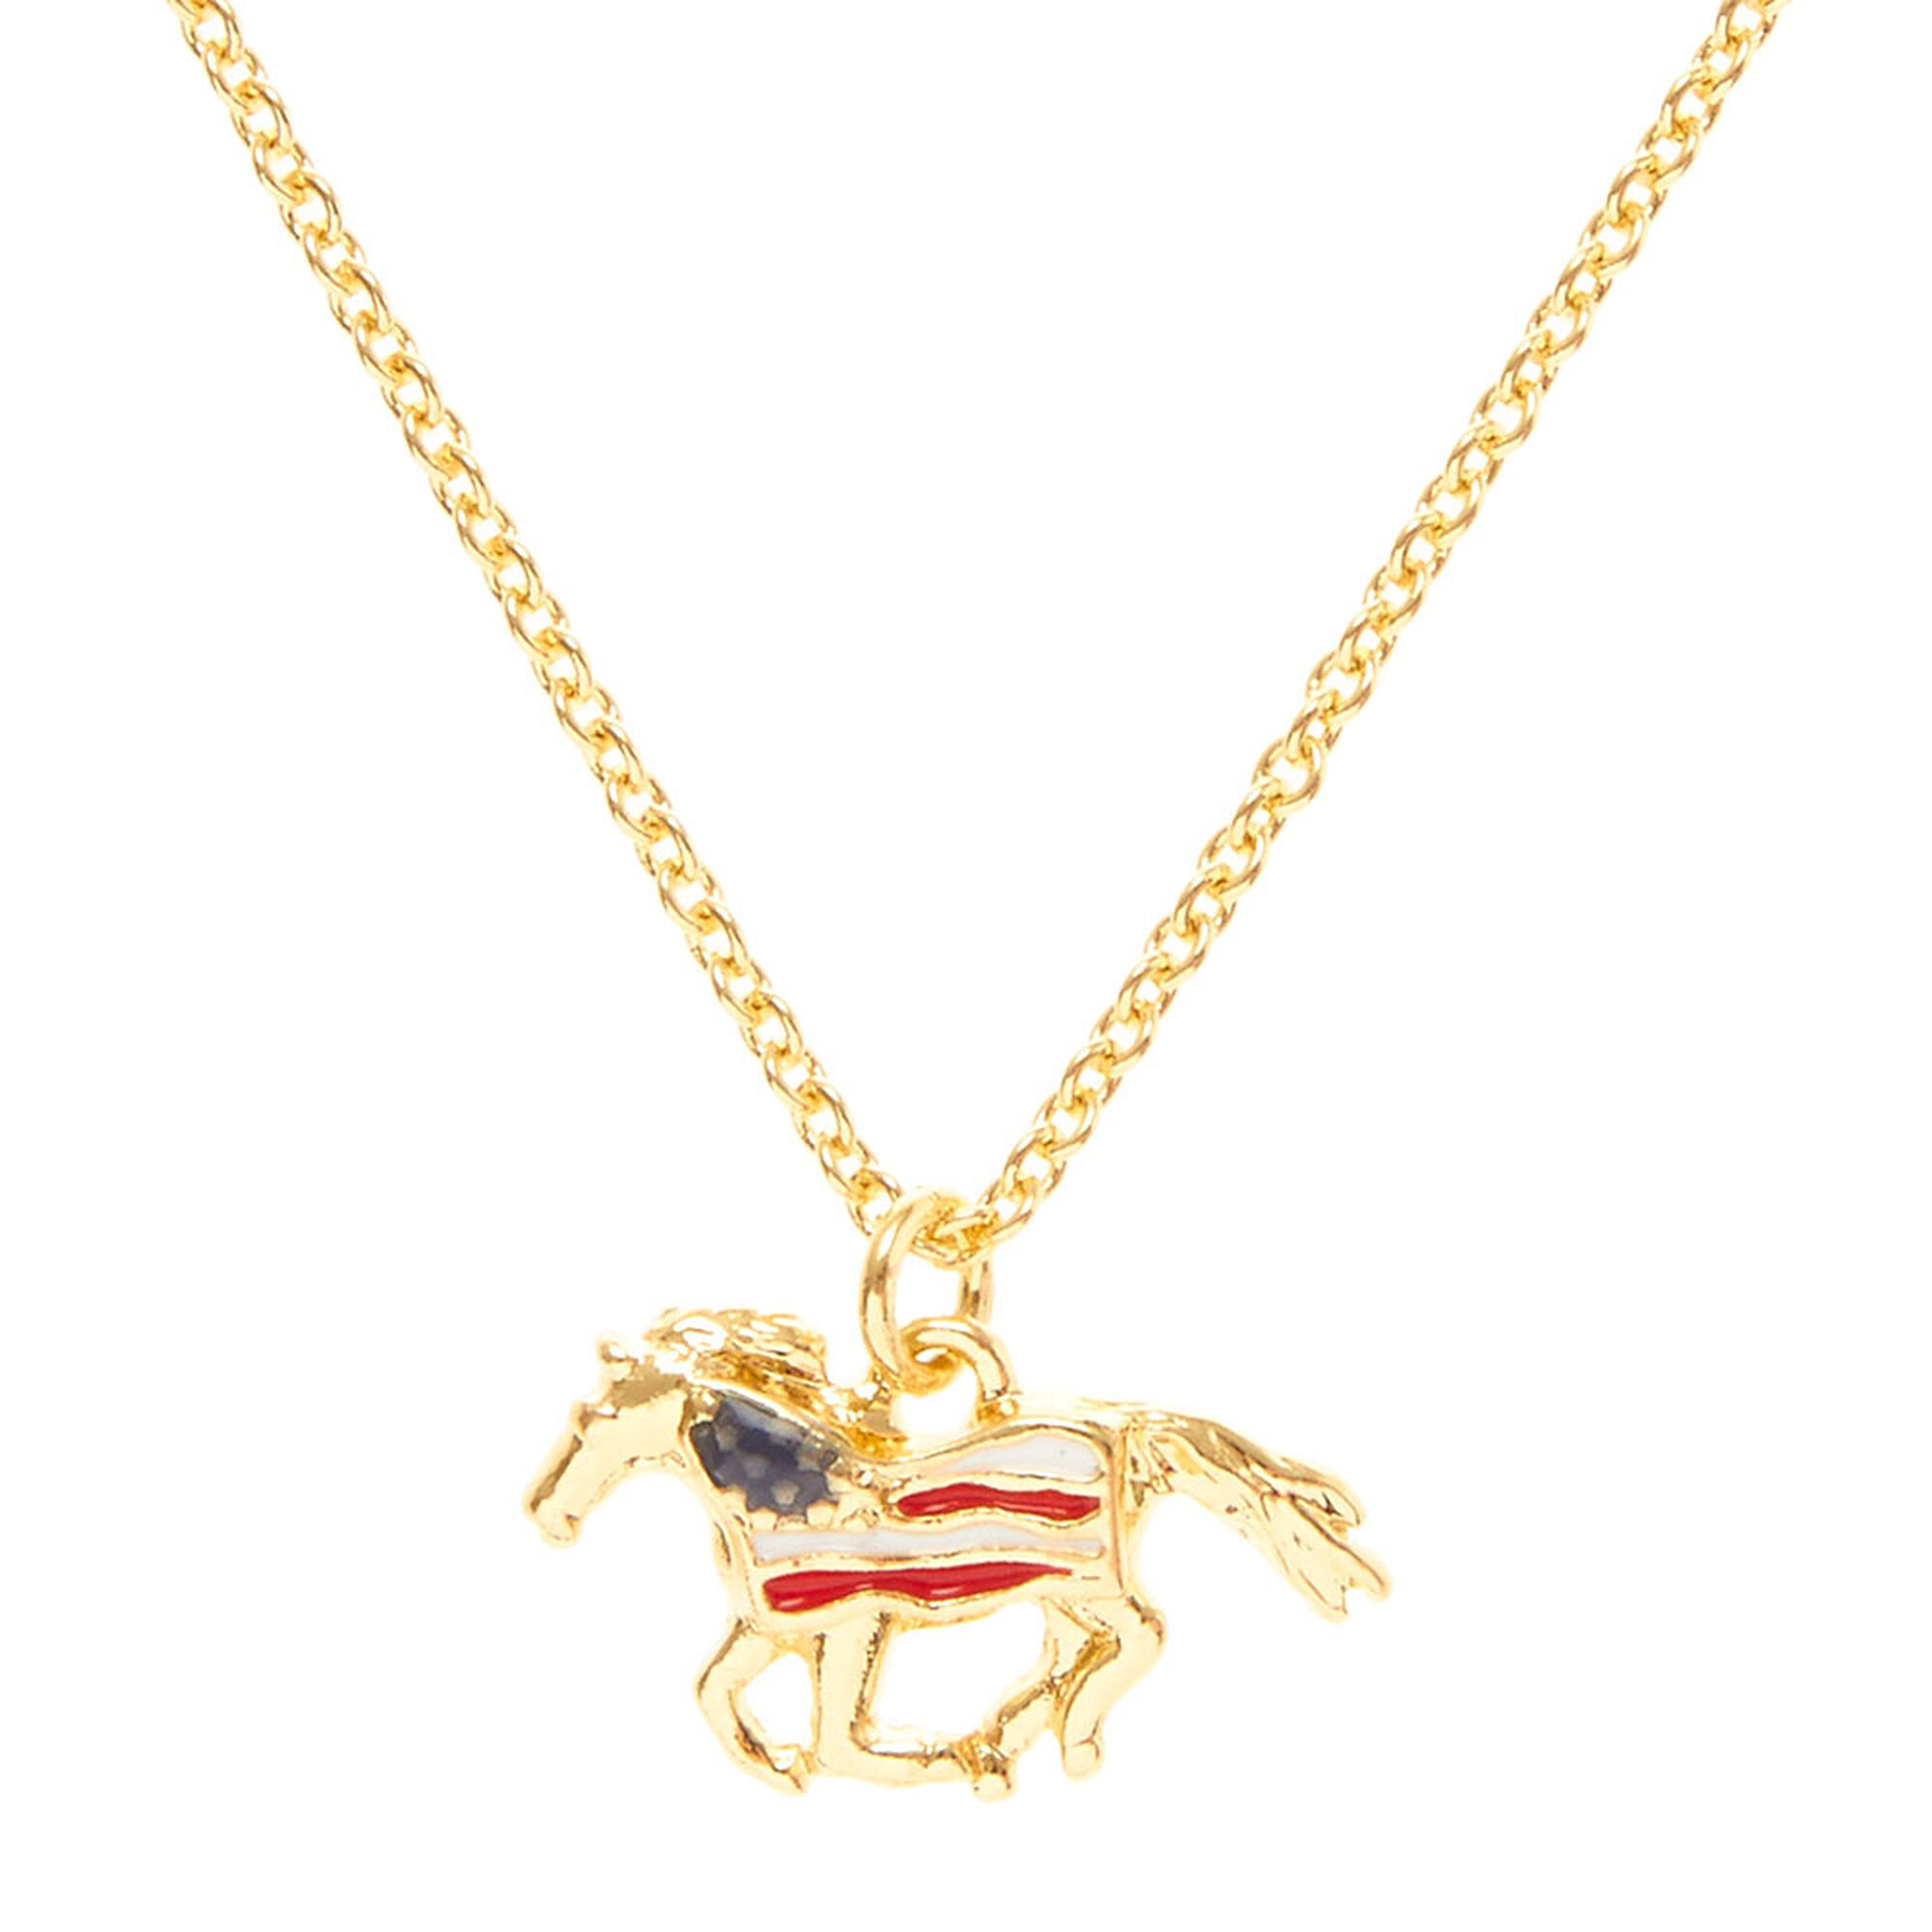 American flag gold horse pendant necklace claires us american flag gold horse pendant necklace mozeypictures Gallery